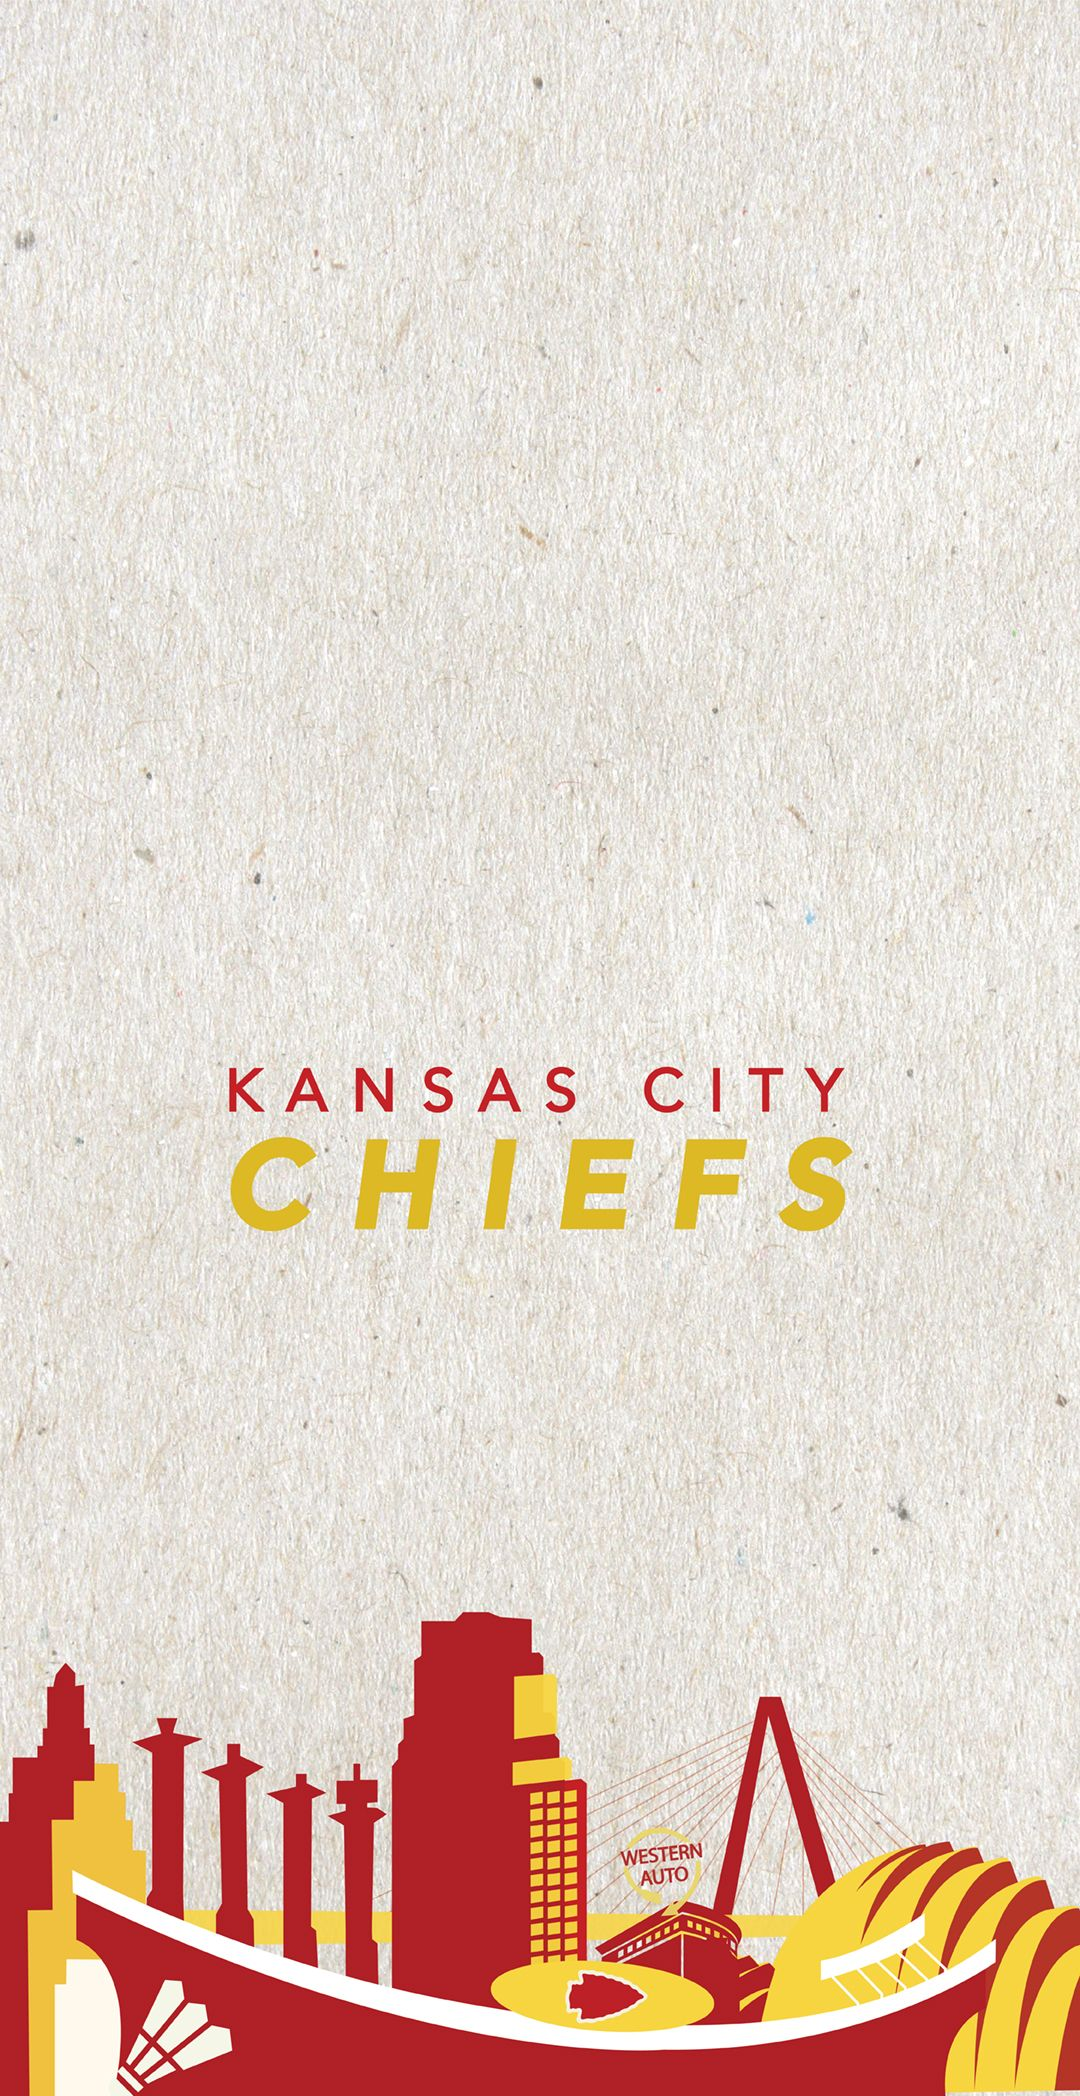 The Kansas City Arrowhead Cityscape Designed As A Mobile Wallpaper As A Free Download With Newly Added Kc Landmarks Including Sh In 2020 Kansas City Chiefs Kansas City Skyline Design